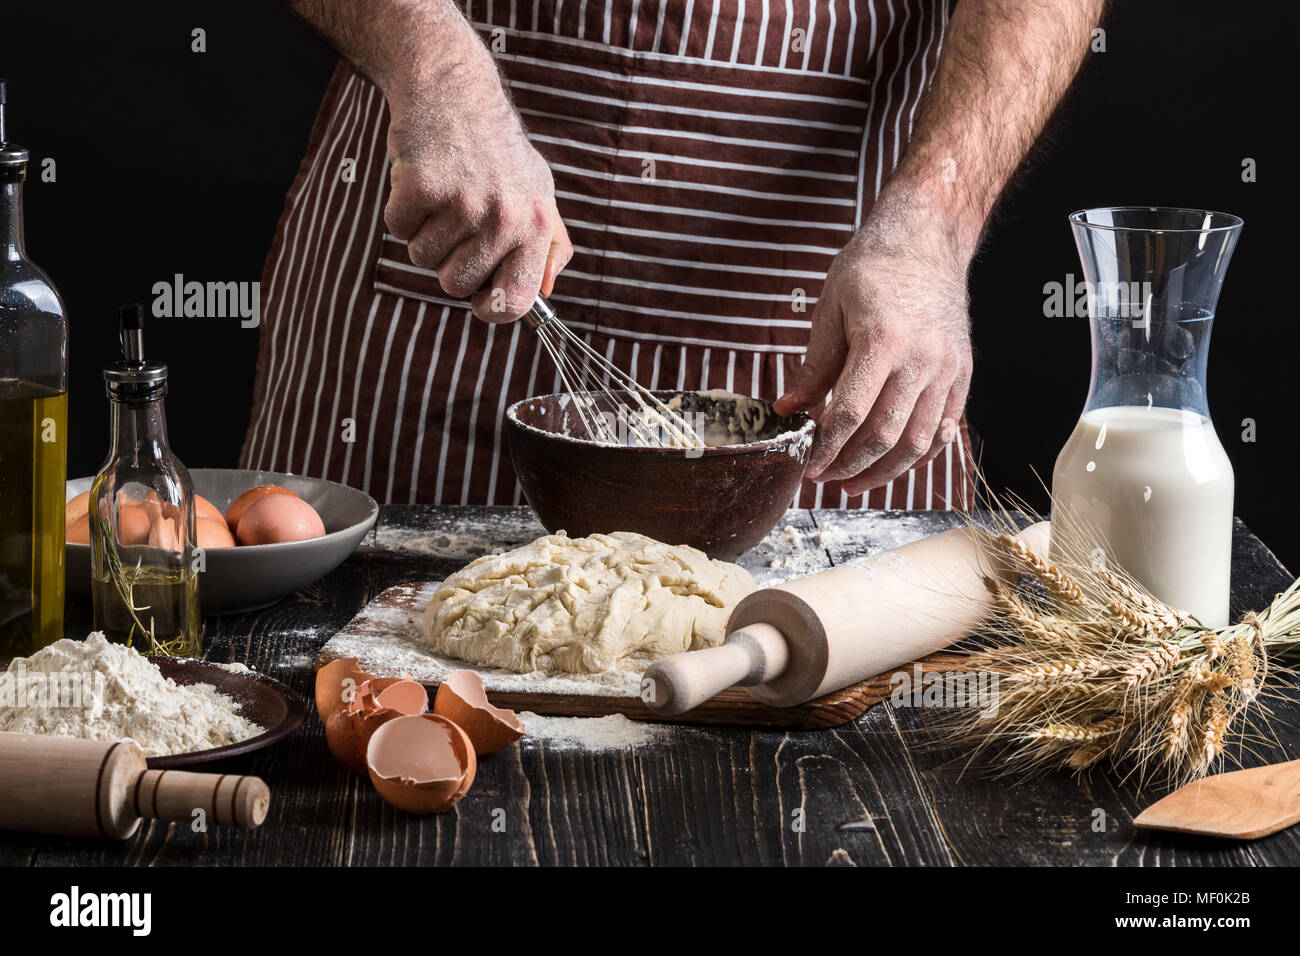 Male chef whipping eggs in the bakery on wooden table. Ingredients for cooking flour products or dough Stock Photo